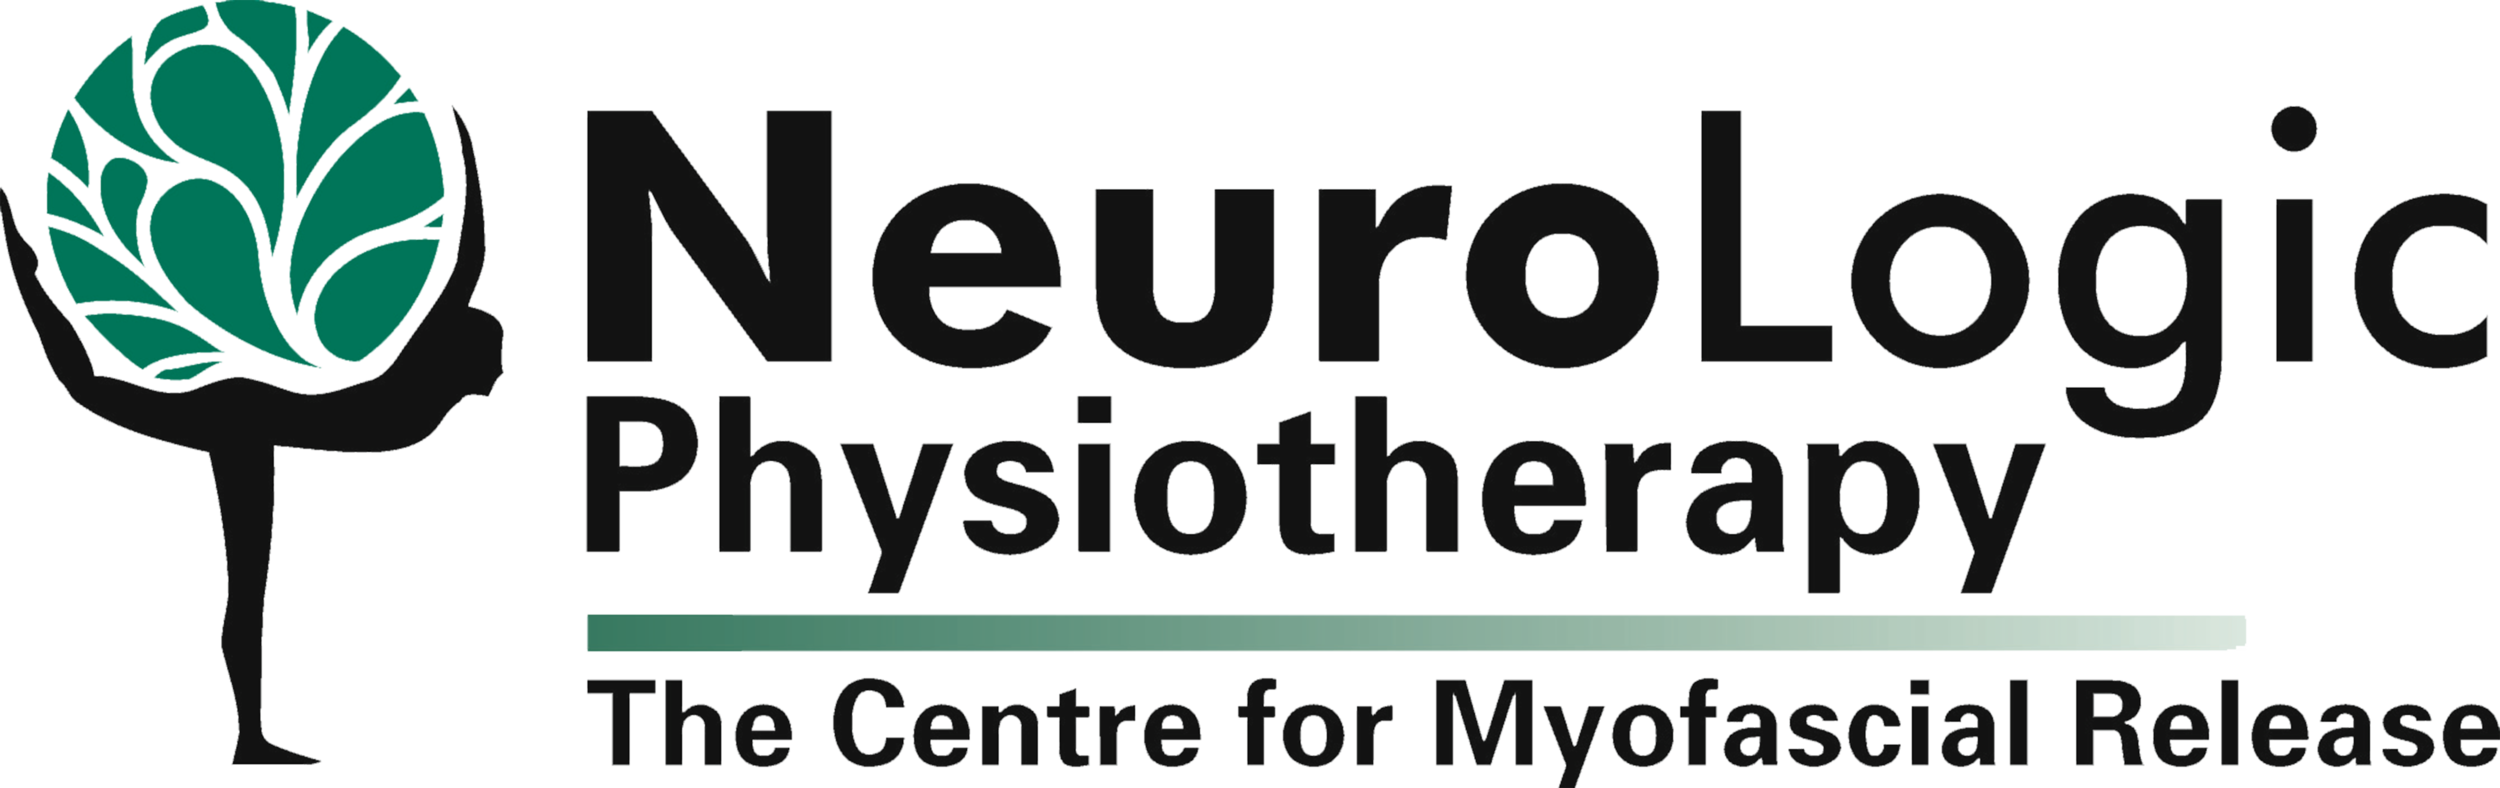 NeuroPhysioLogo copy (2).png